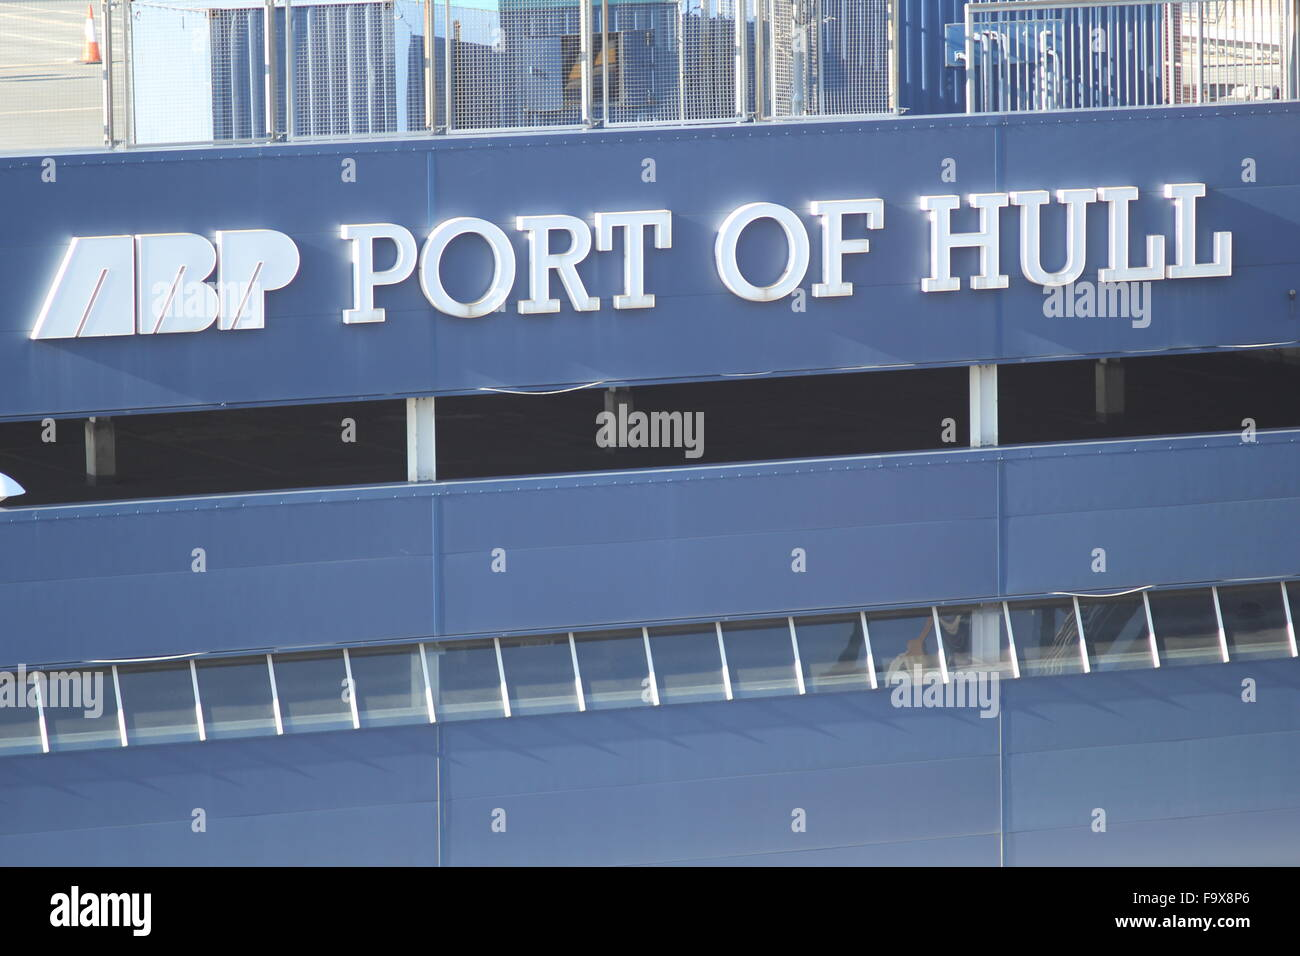 ABP Port of Hull Sign - Stock Image